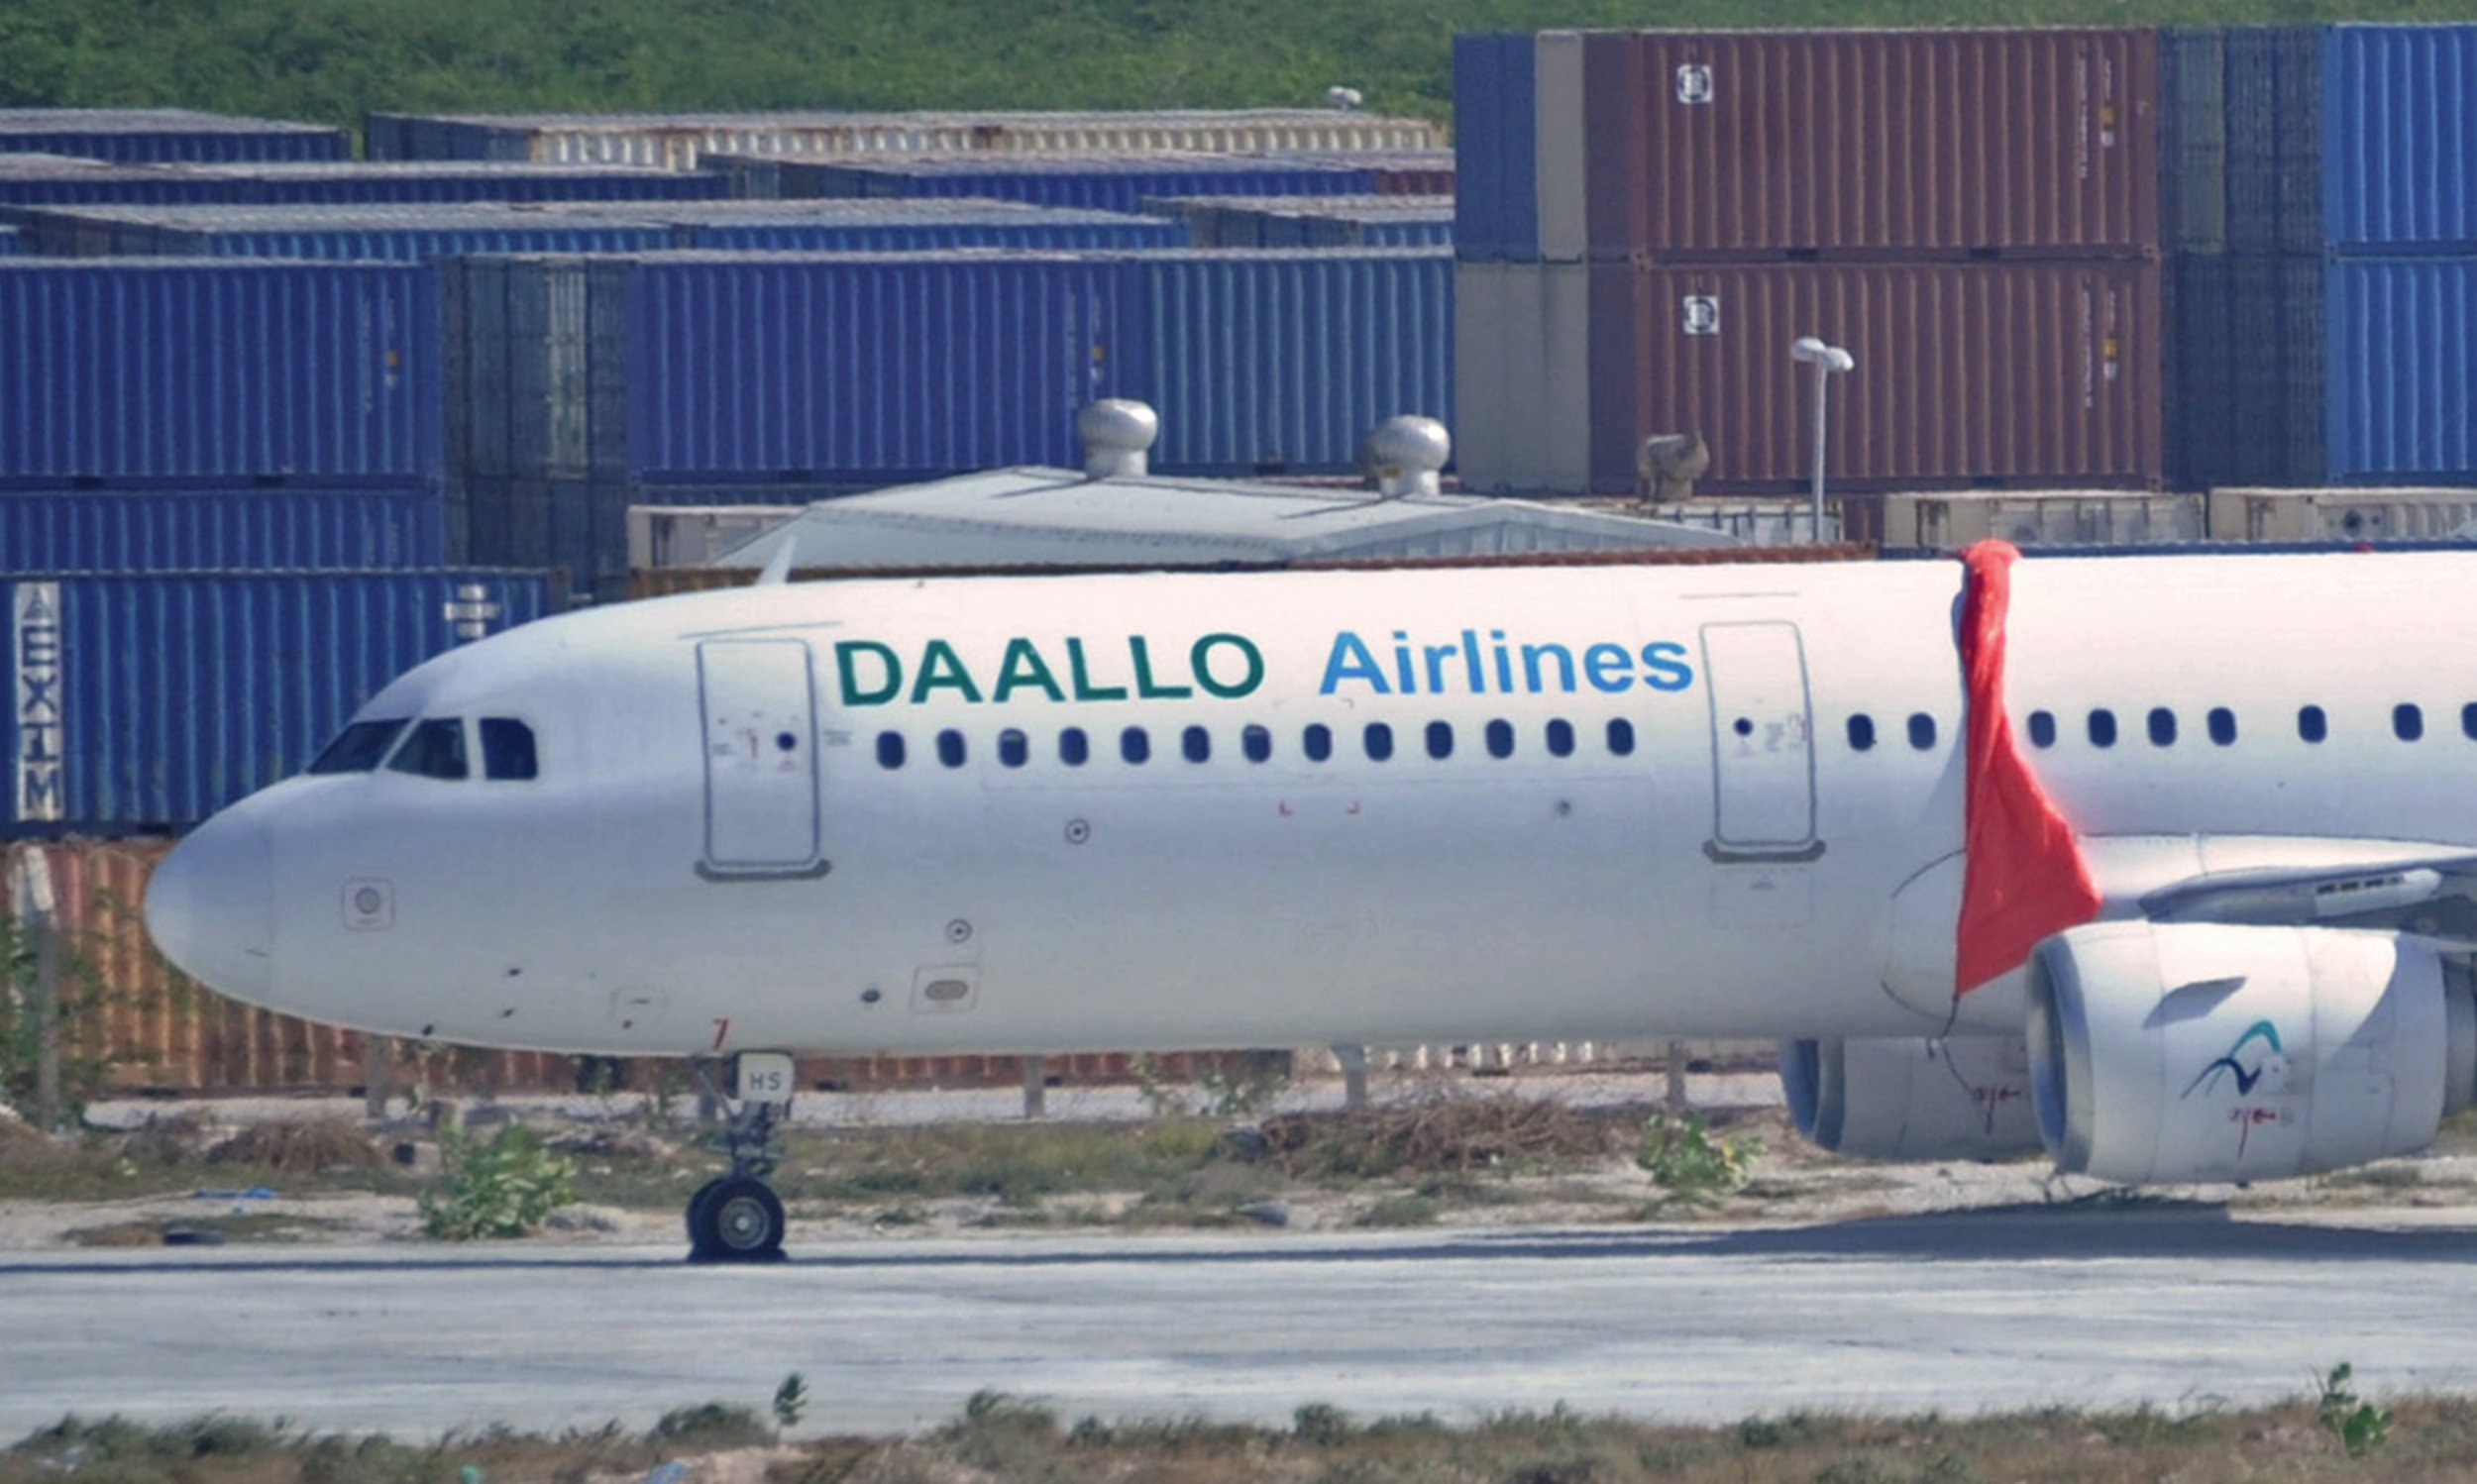 A Daallo Airlines plane in Mogadishu after a suspected suicide bomber blew a hole in the plane.